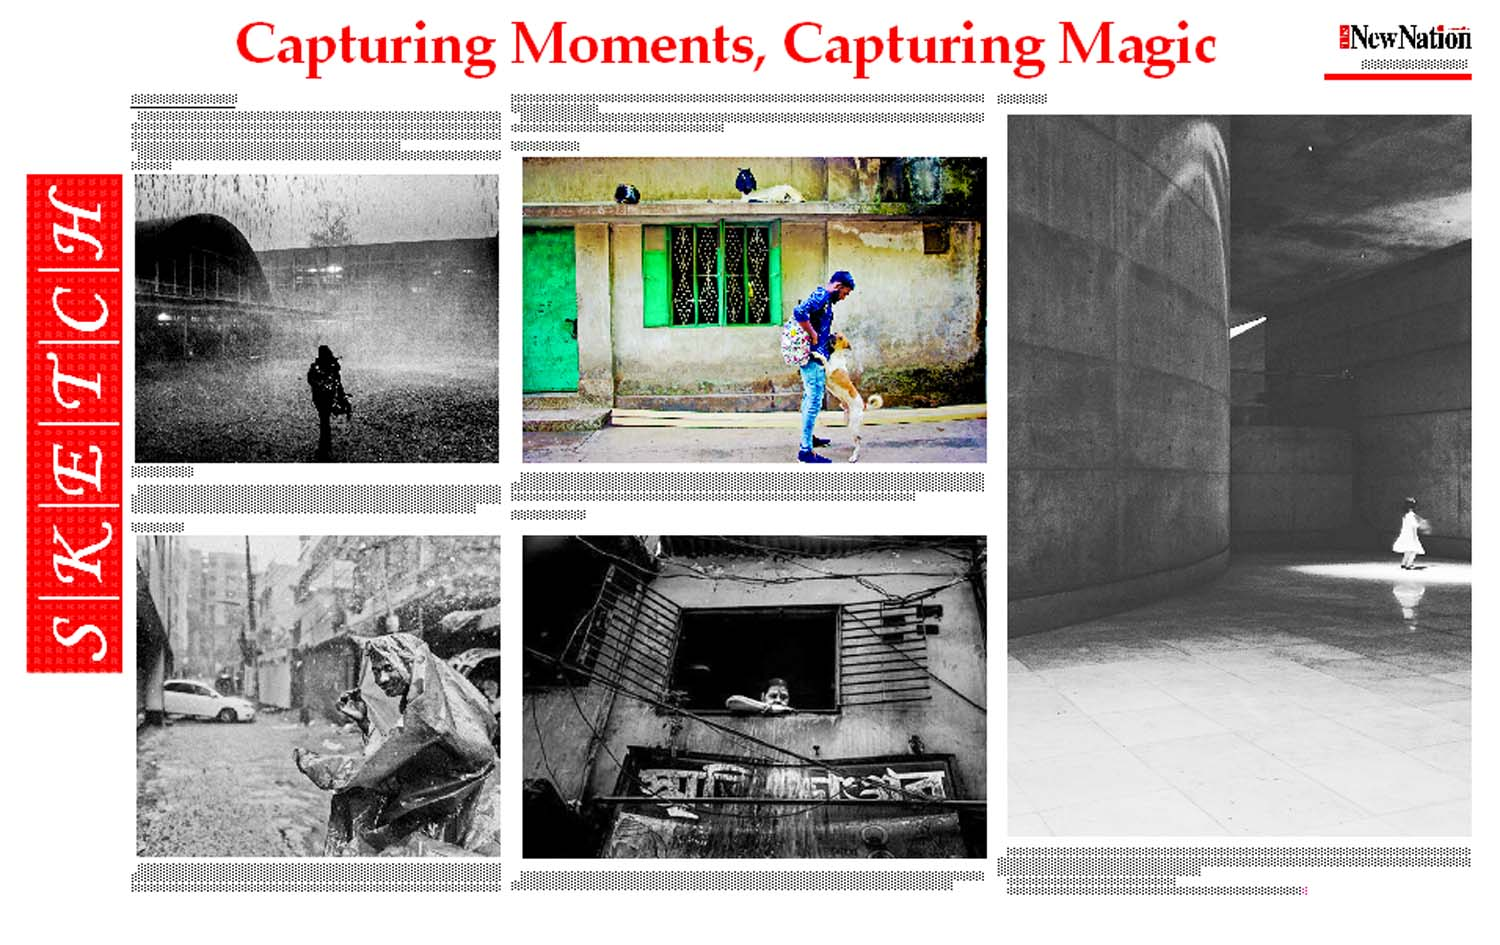 Capturing Moments, Capturing Magic